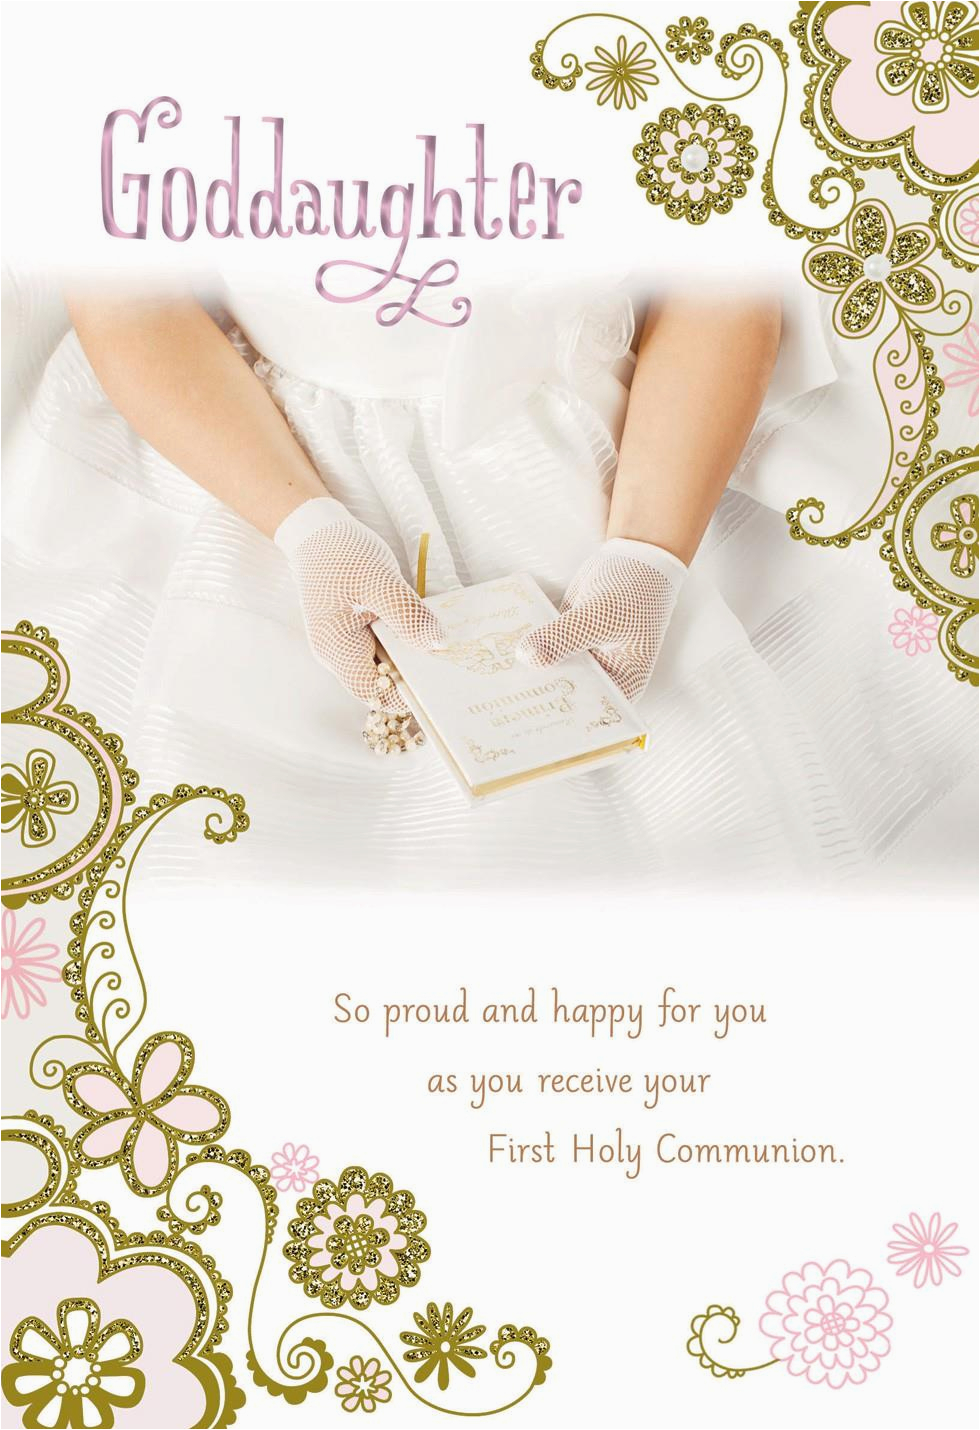 Goddaughter First Birthday Card Hands In White Gloves First Holy Communion Card for